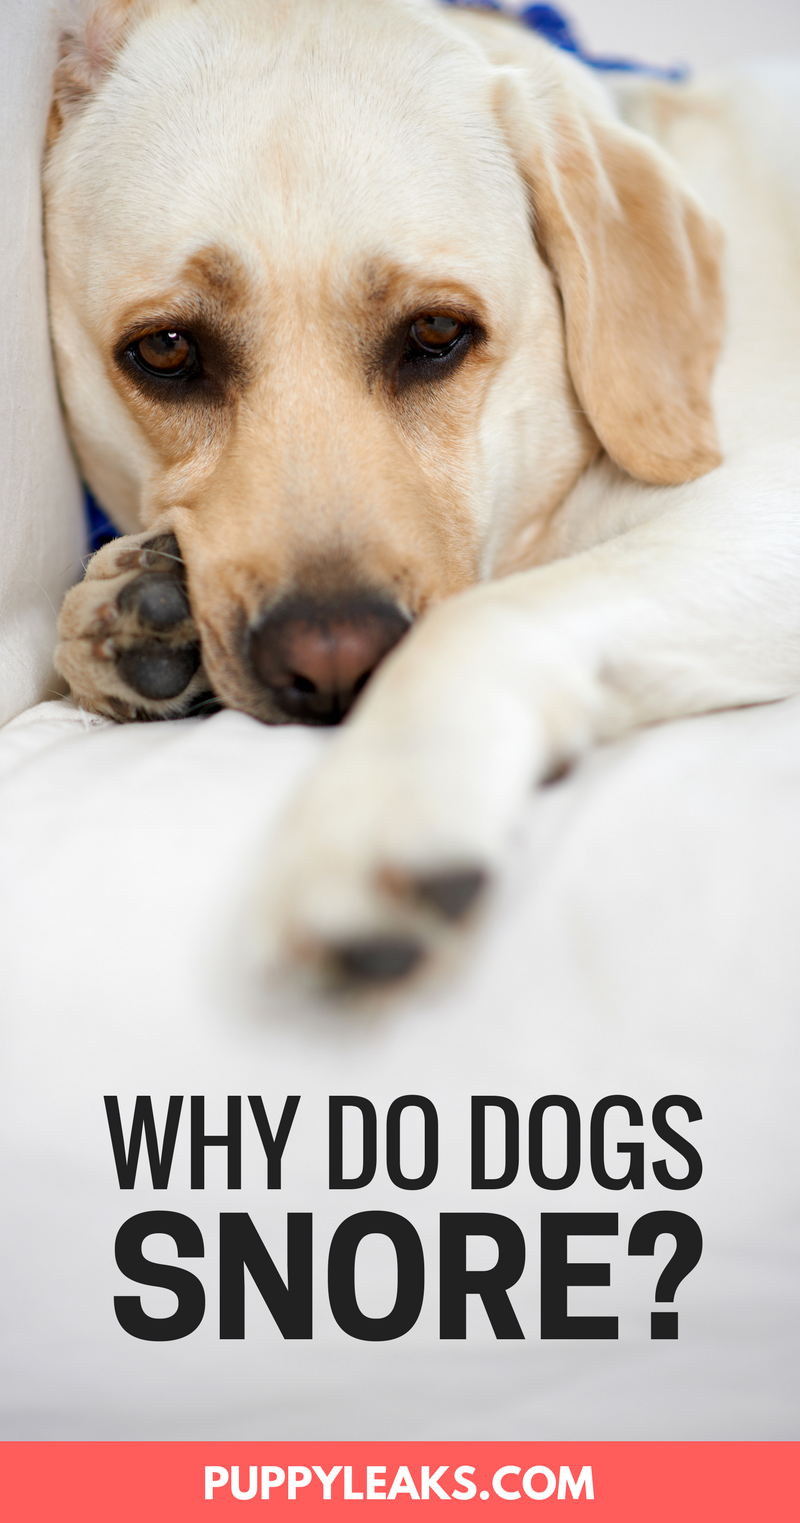 Why Do Dogs Snore? Common Causes For Snoring in Dogs.